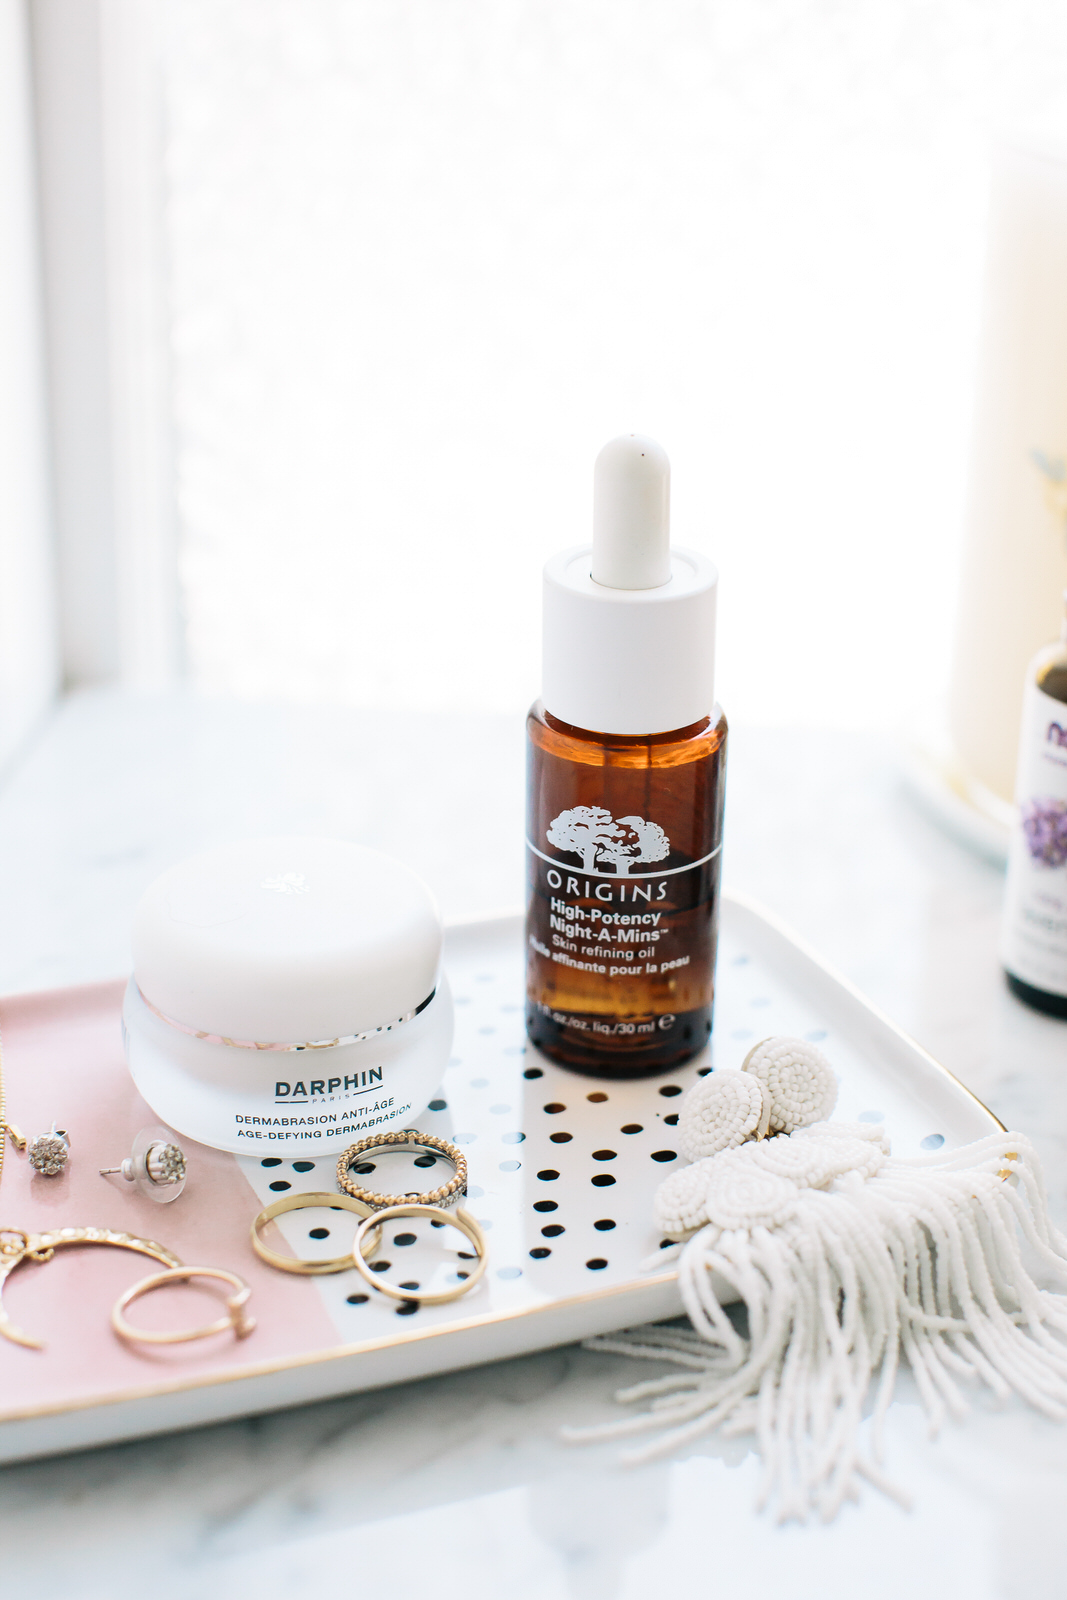 Liz Adams of Sequins & Stripes shares her go-to beauty products for healthy skincare.